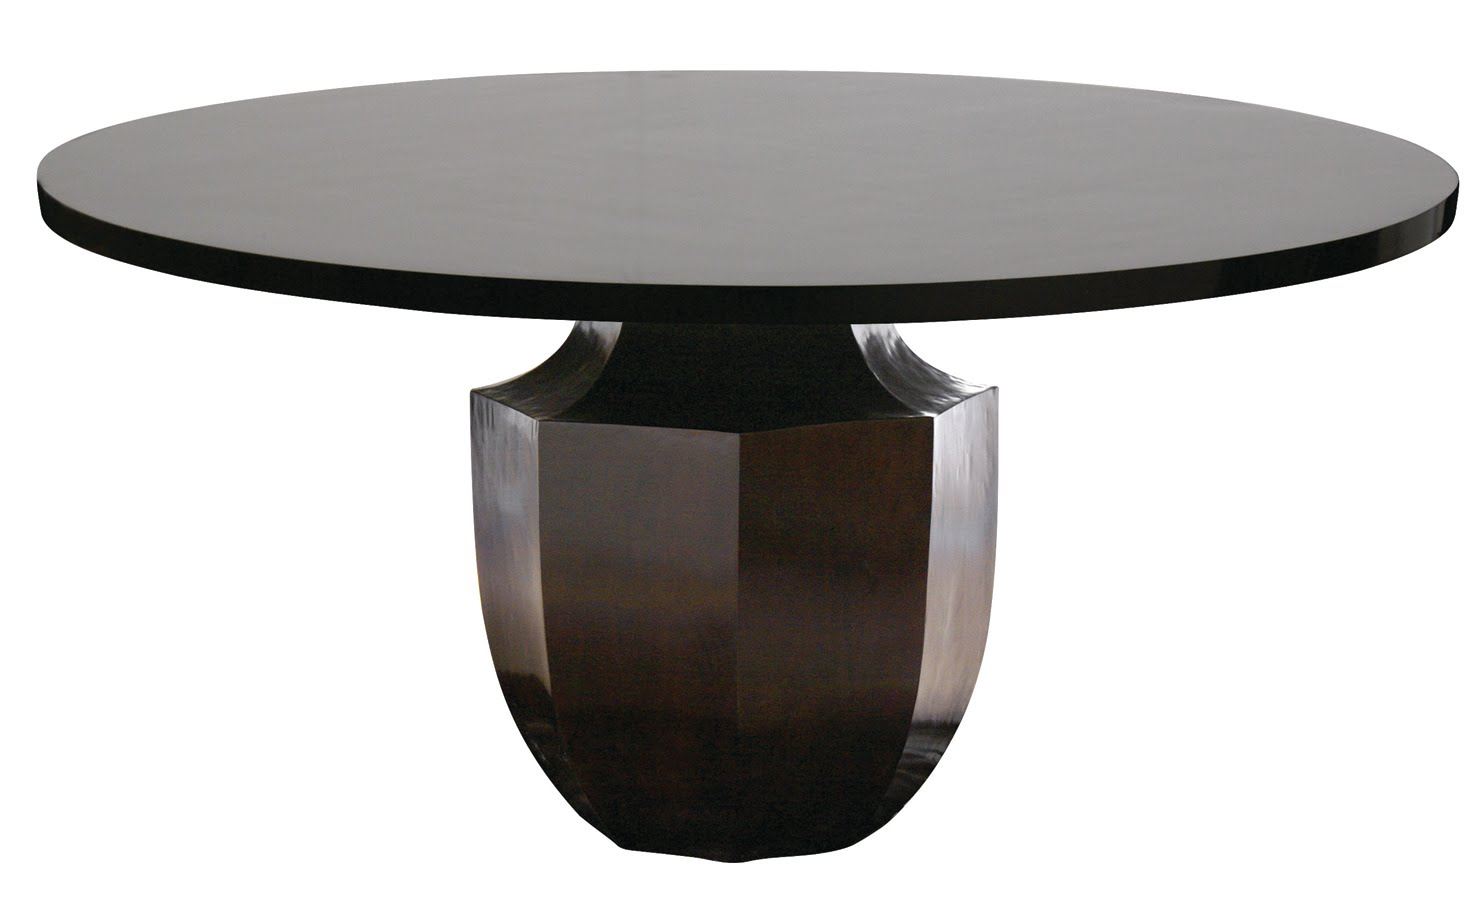 Impressive Round Dining Table 1471 x 900 · 63 kB · jpeg